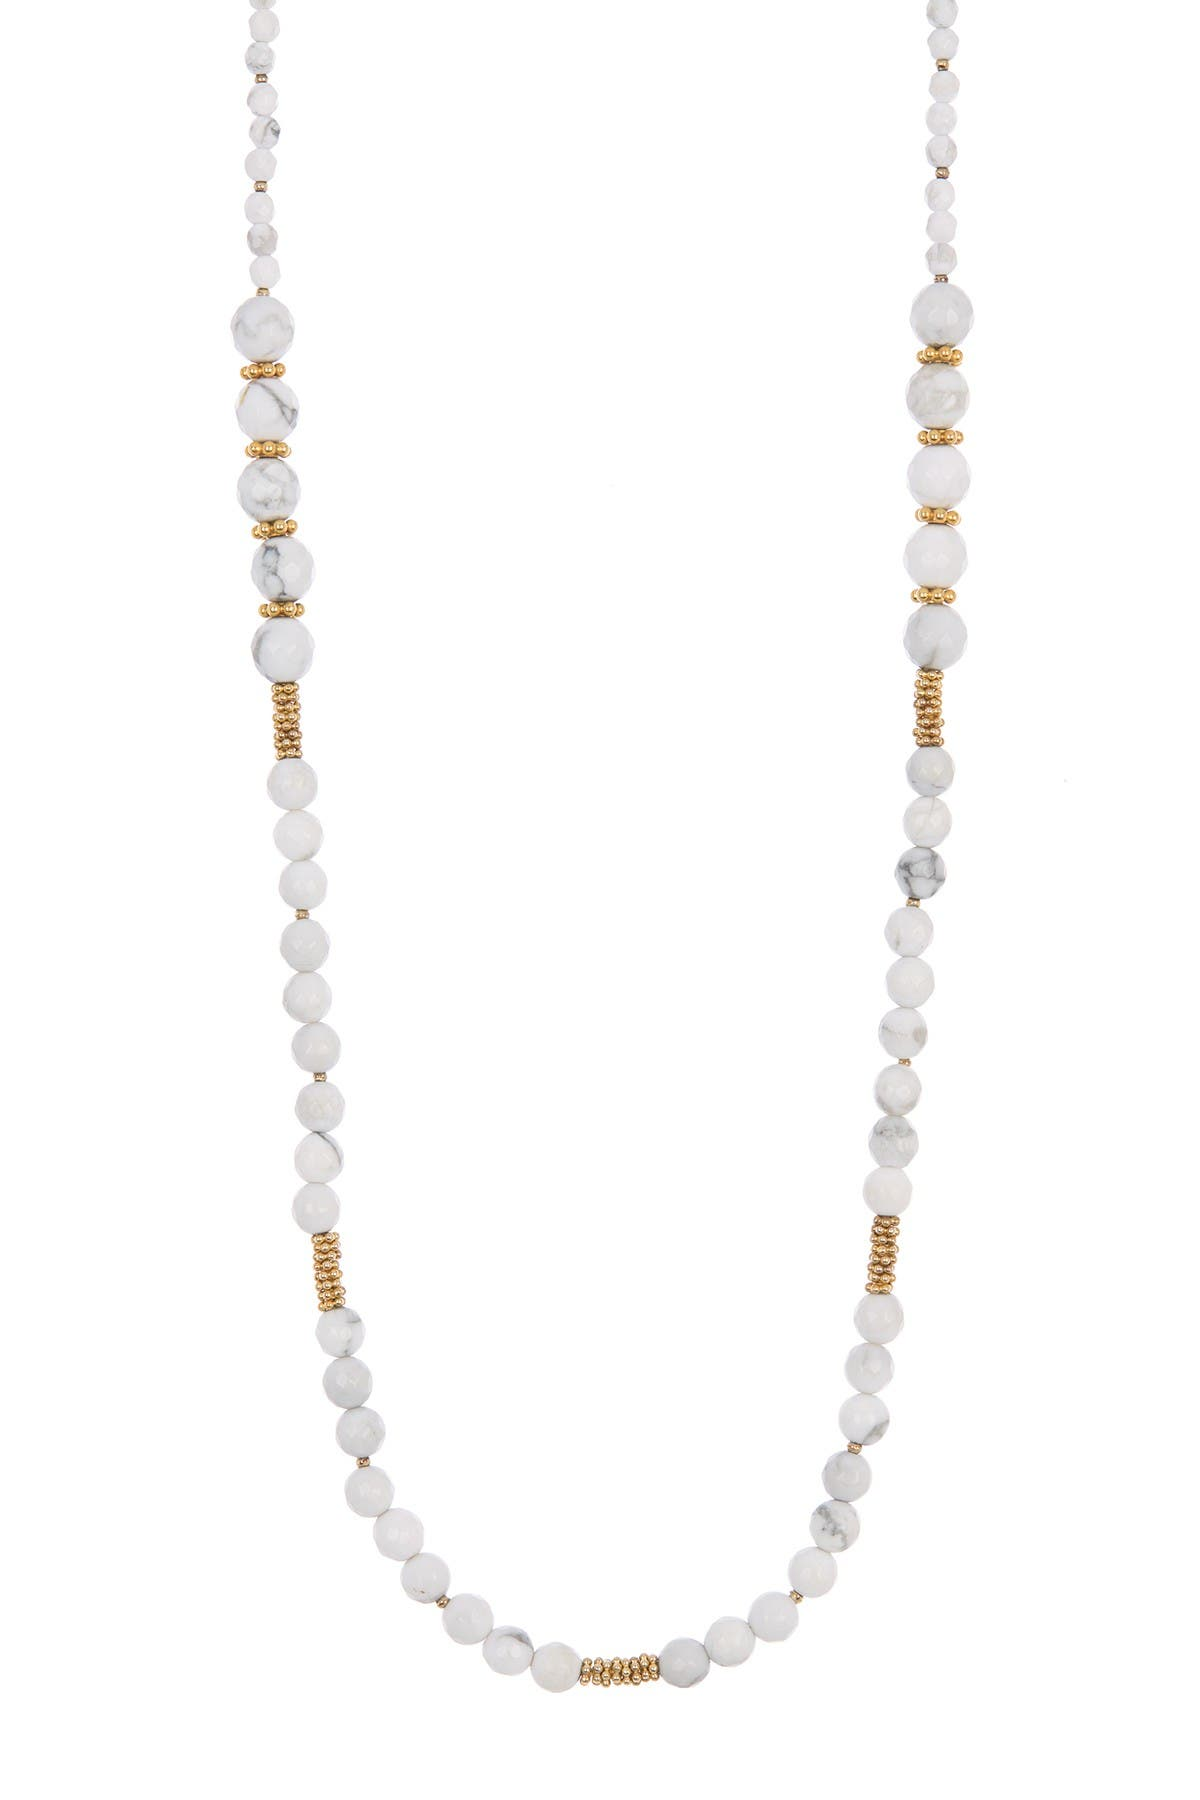 Image of Anna Beck 18K Gold Plated Sterling Silver White Howlite Beaded Necklace